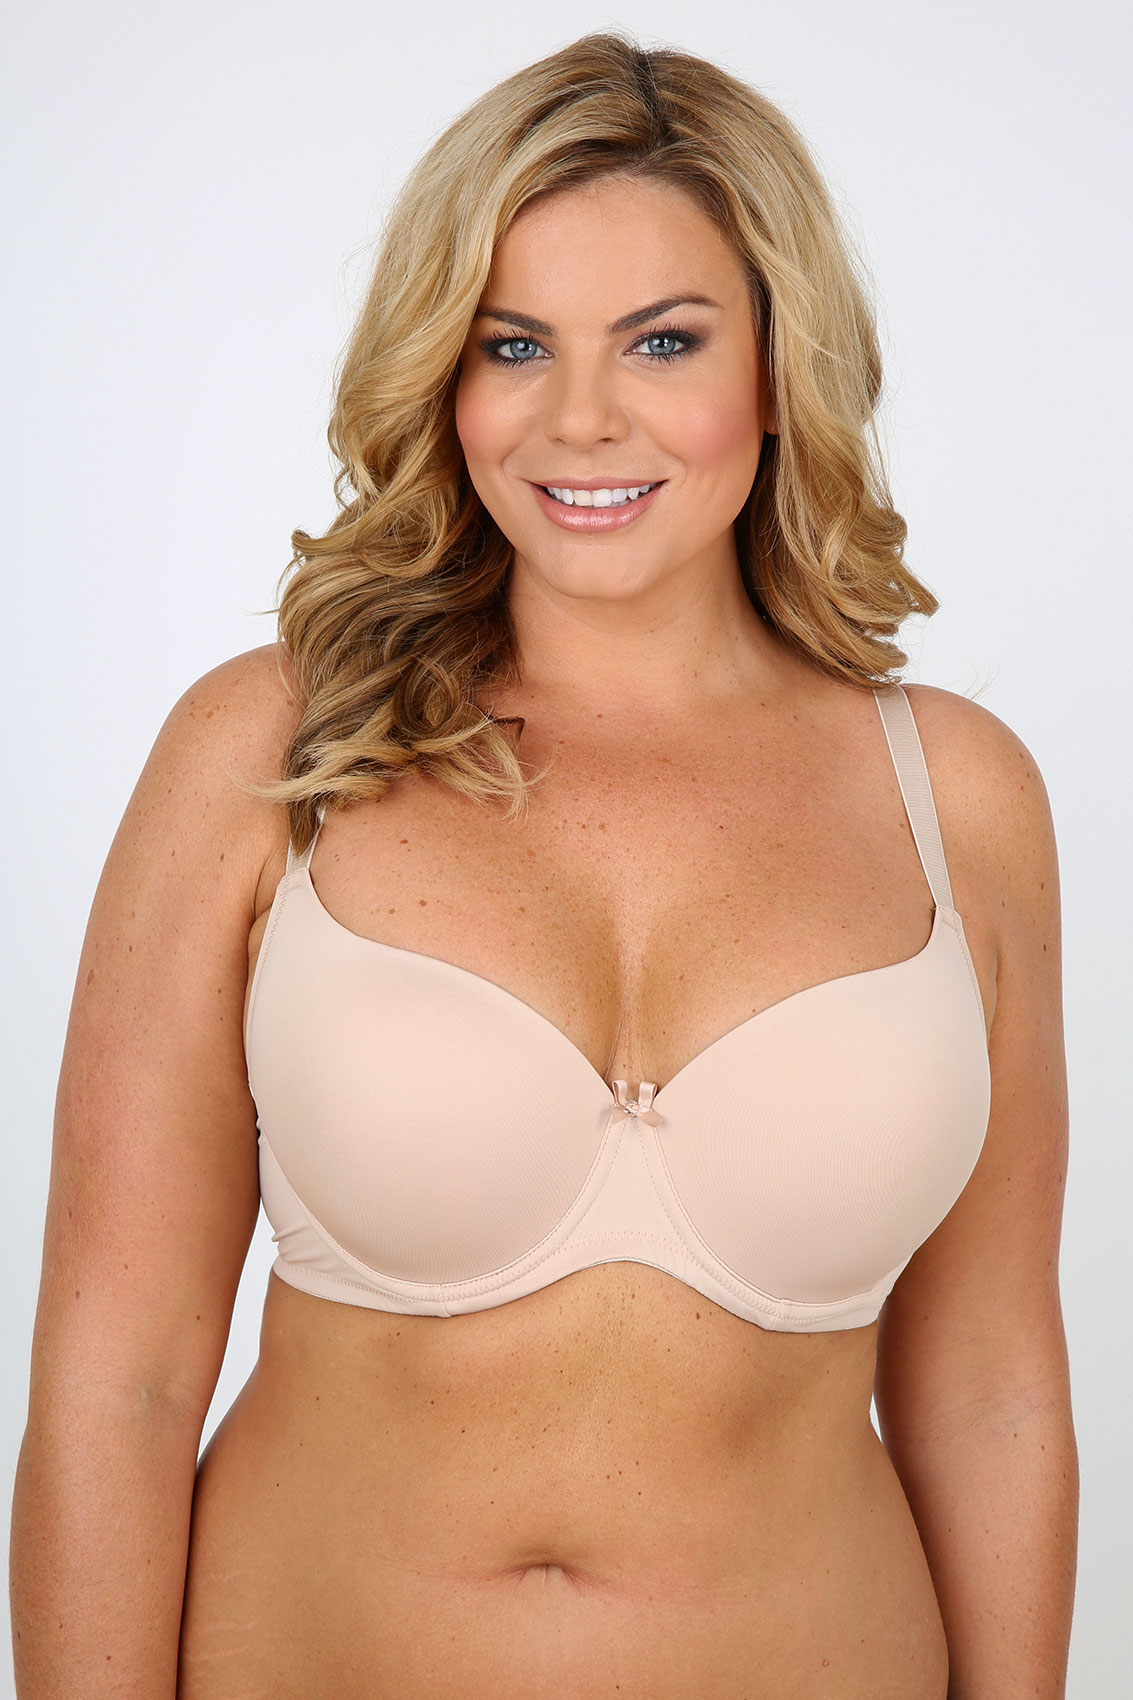 UK to Australian Bra Size With a UK to Australian (French to UK) Bra Size Converter at hand, you are ready to do your bra shopping from both USA/Canada and Australia/New Zealand. So what are you waiting for?:) Need to Determine Your Bra Size? To convert your bra size, you need to know your bra size See how to measure and determine UK Bra Size or Australian Bra Size.